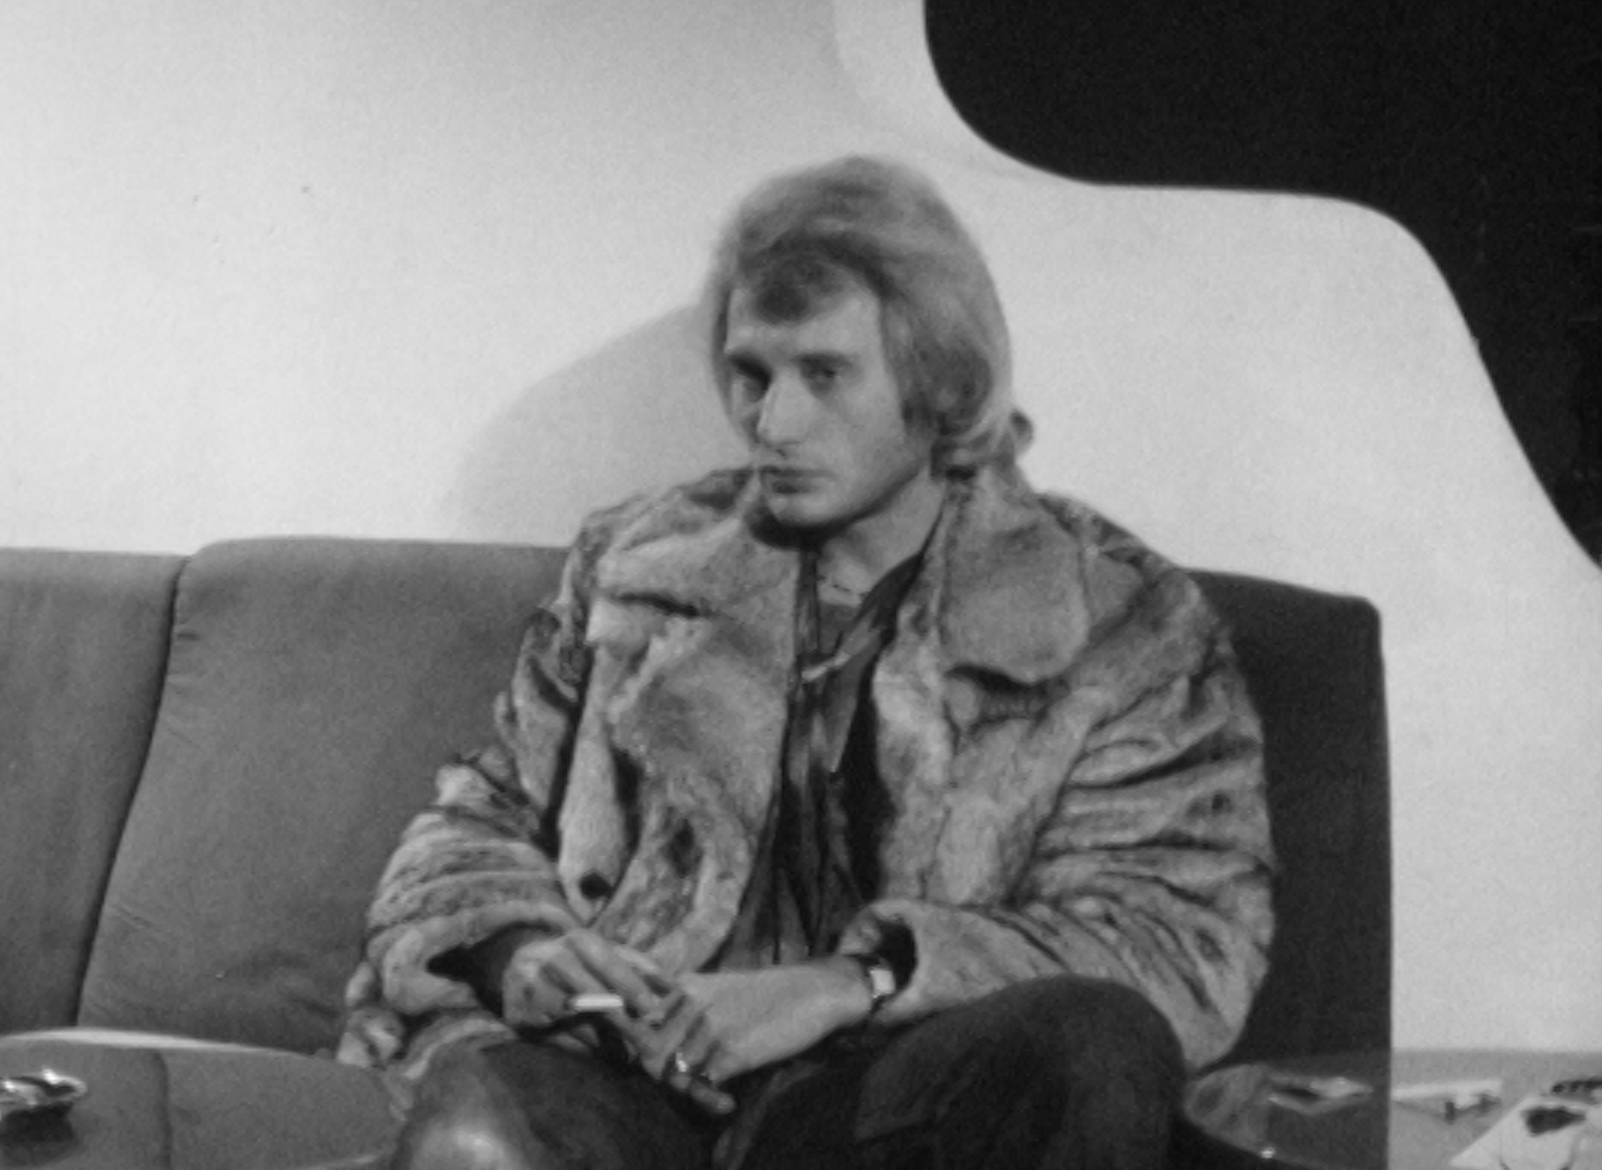 Johnny Hallyday en interview en 1969.